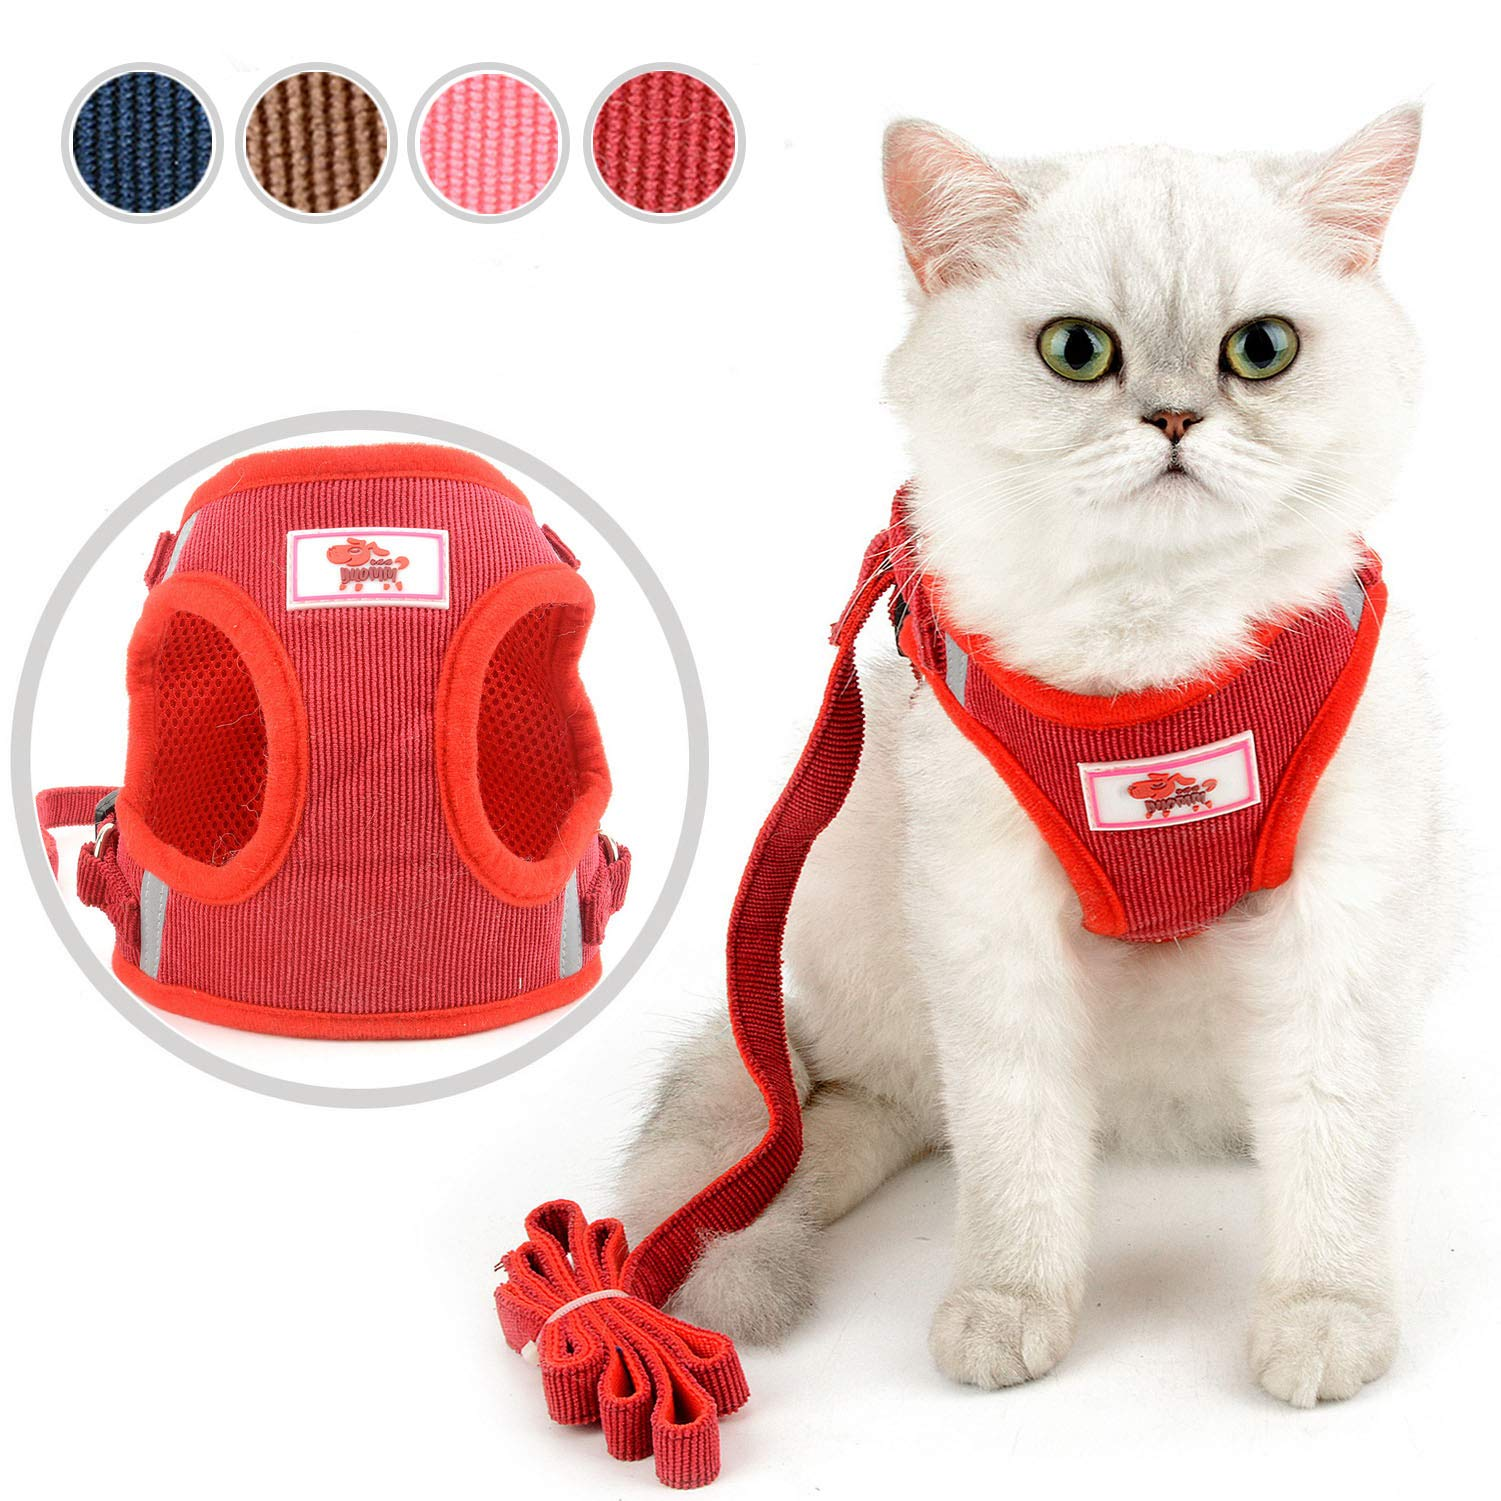 Zunea Pet Cat Harness and Lead Set Escape Proof for Walking Adjustable Reflective Step-in No Pull Mesh Padded Puppy Vest Harnesses Soft Corduroy for Kitten Small Dogs Red L by Zunea